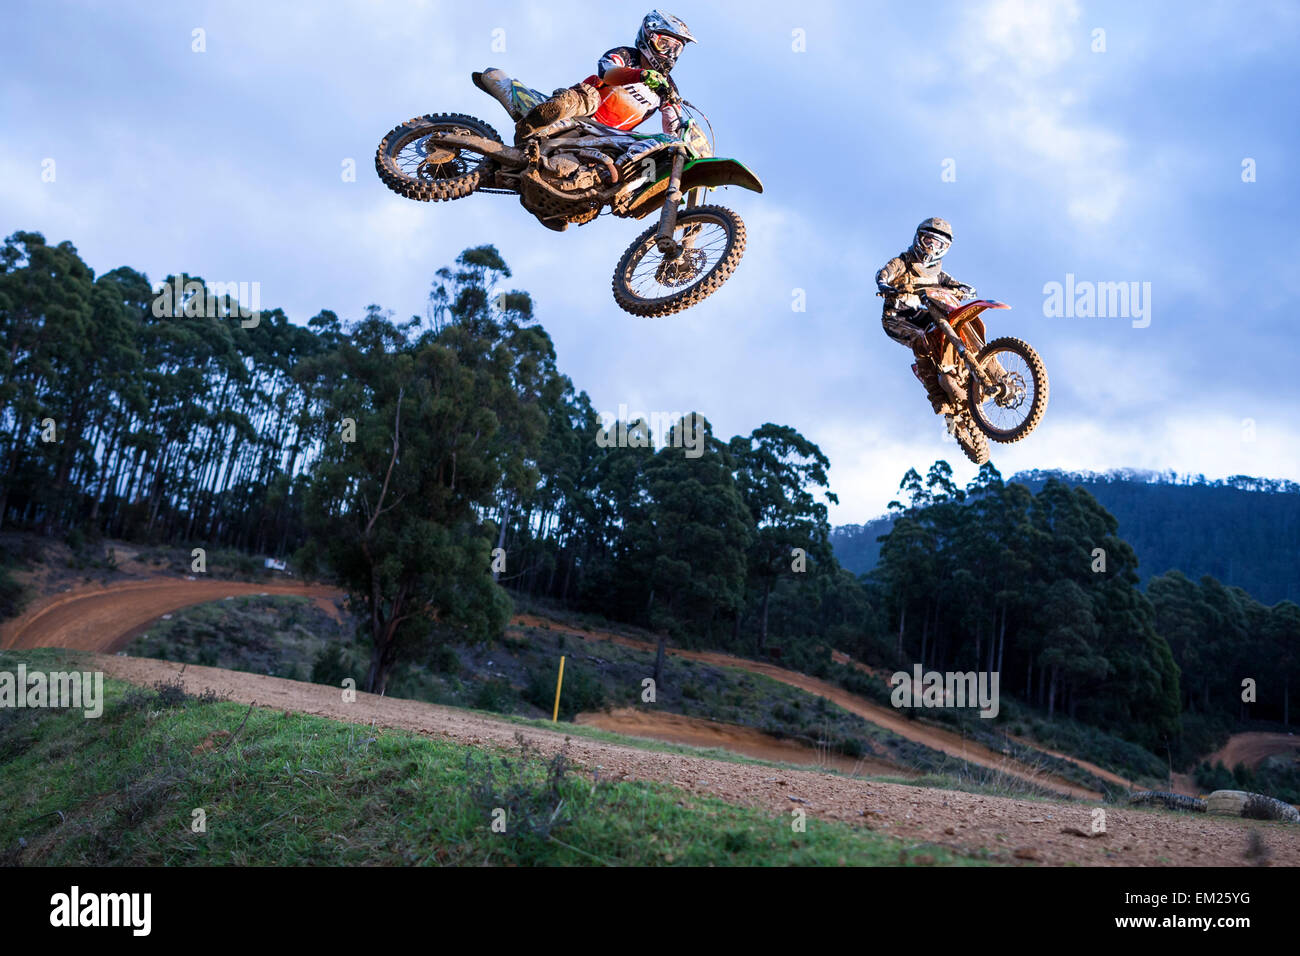 Two dirt bike racers jumping tabletop. - Stock Image